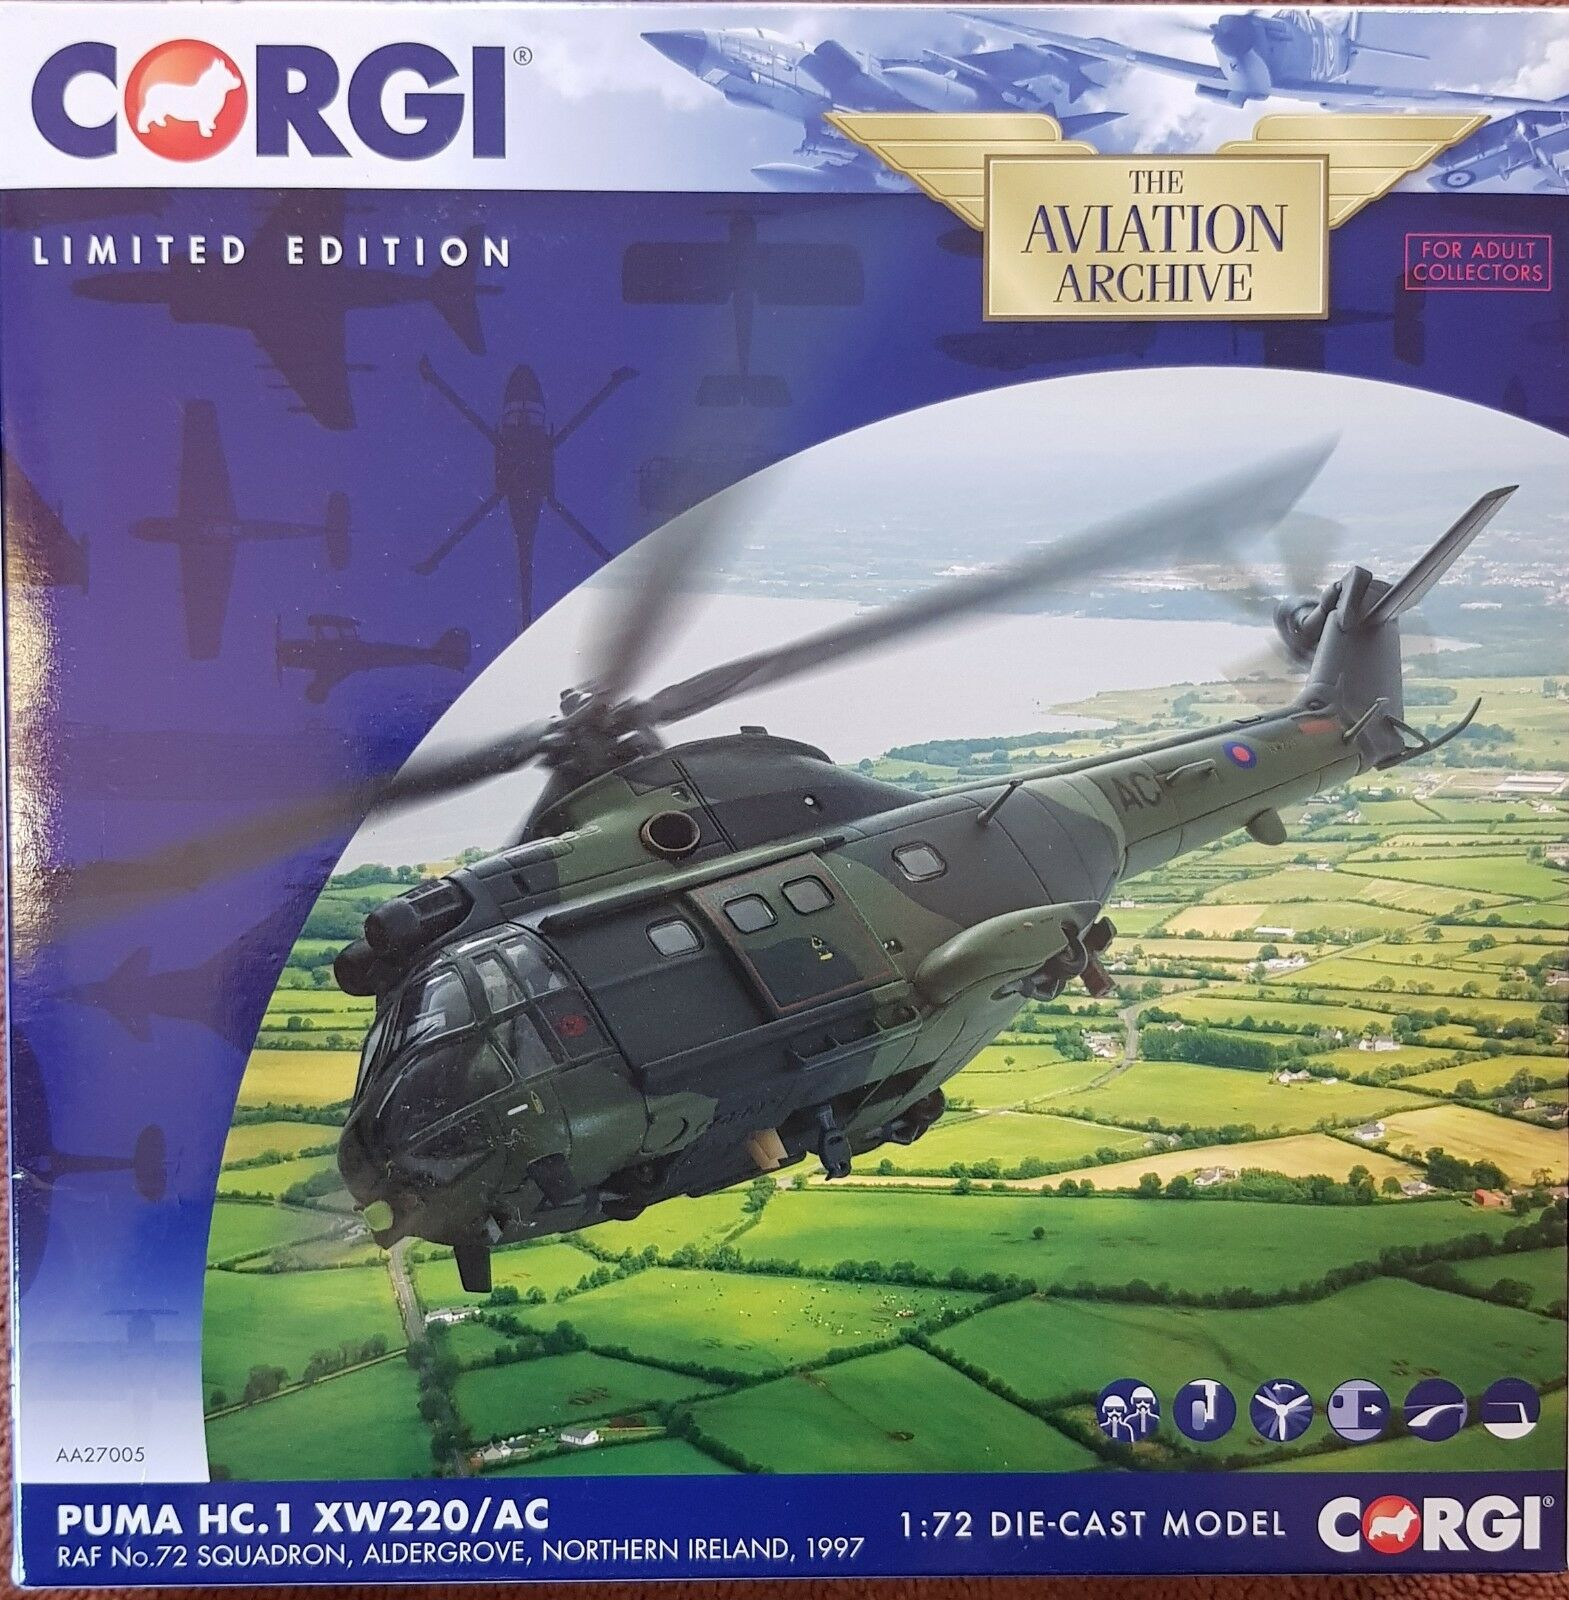 Corgi Aviation Puma HC.1 XW220 AC RAF No.72 Sqn Aldergrove N.Ireland1997 AA27005